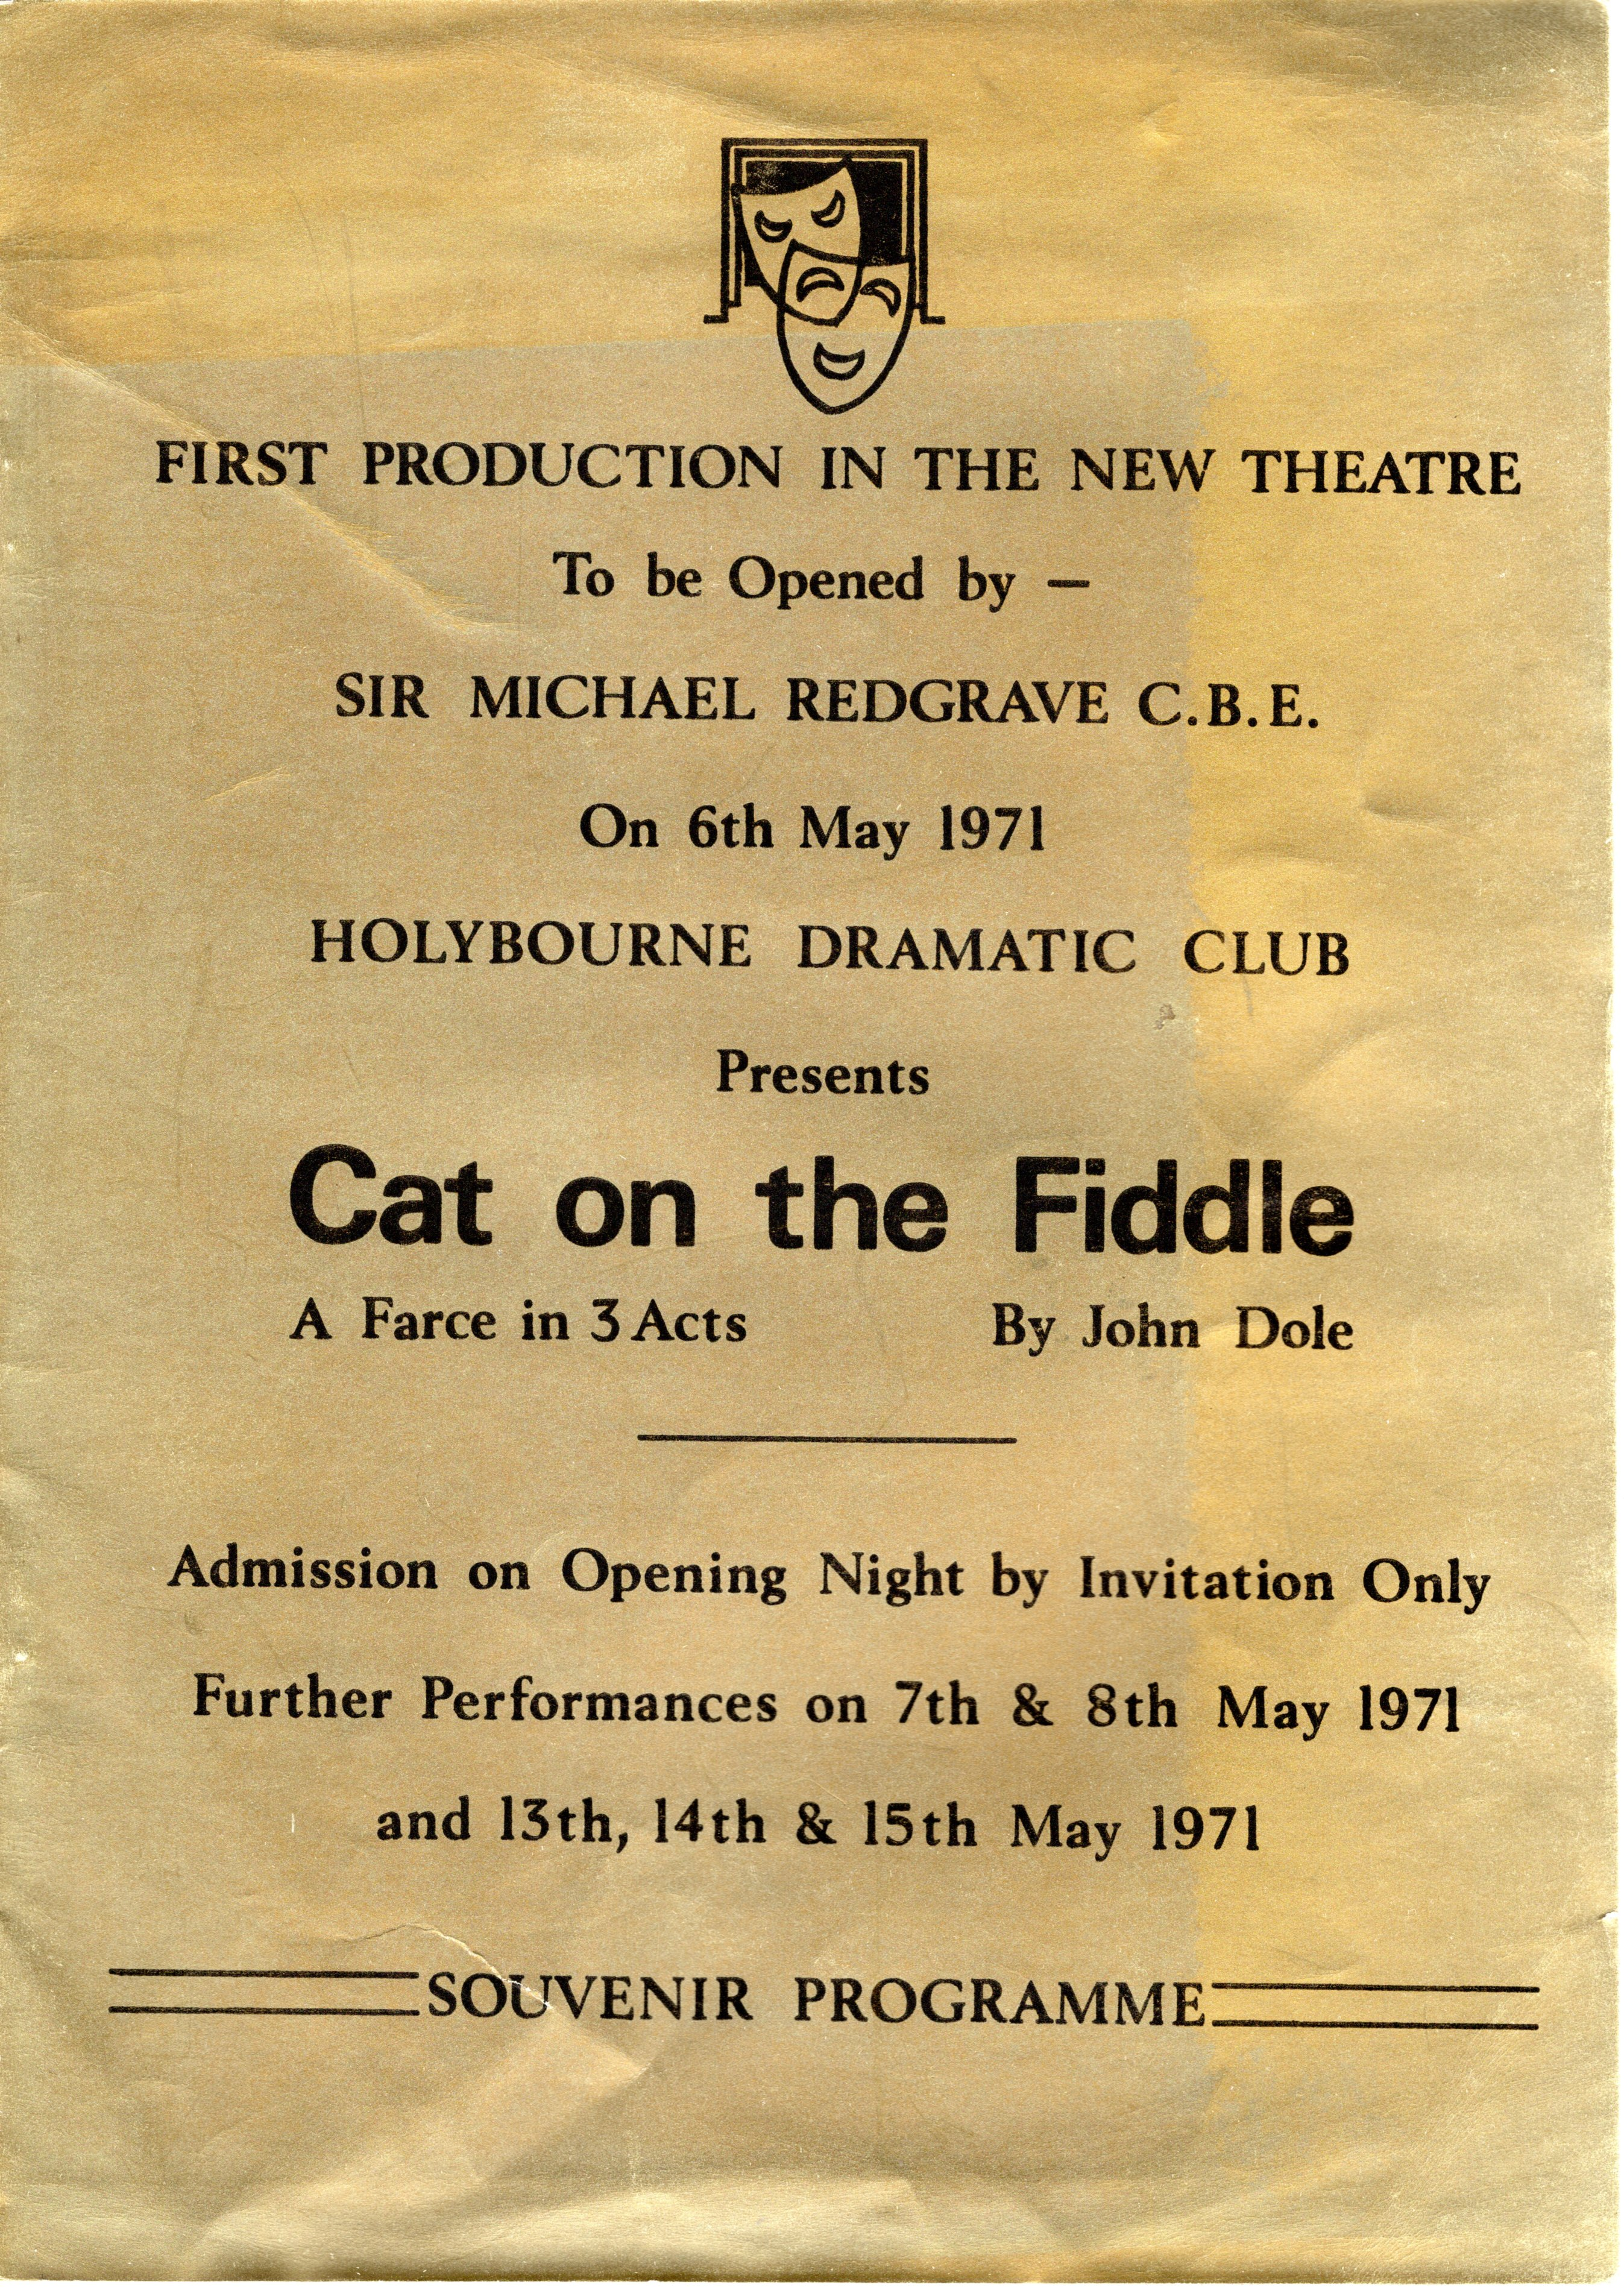 May 1971 Opening night arrives